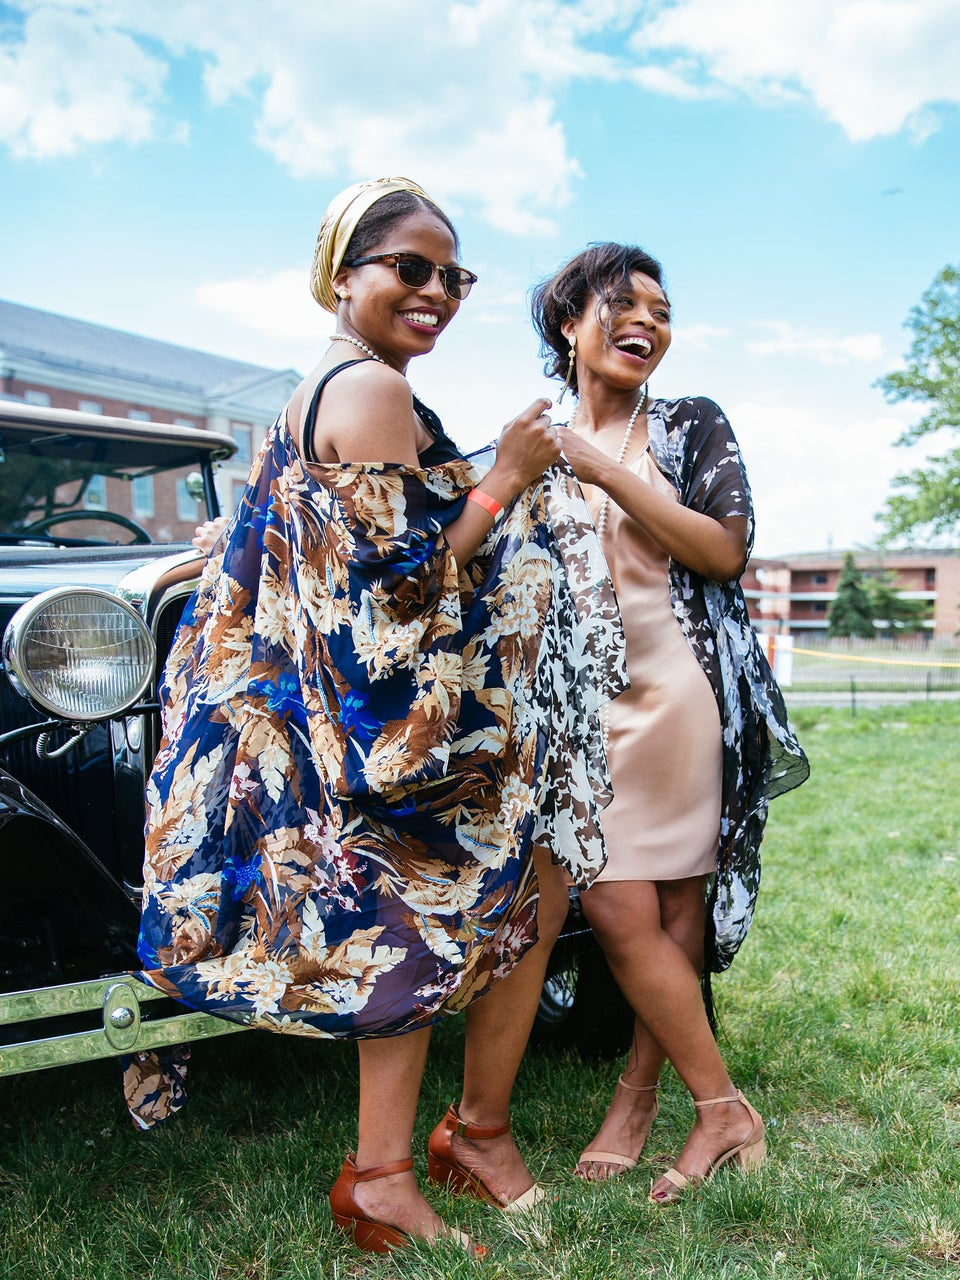 Go Back to the Roaring '20s With These Fabulous Looks From the 12th Annual Jazz Age Lawn Party